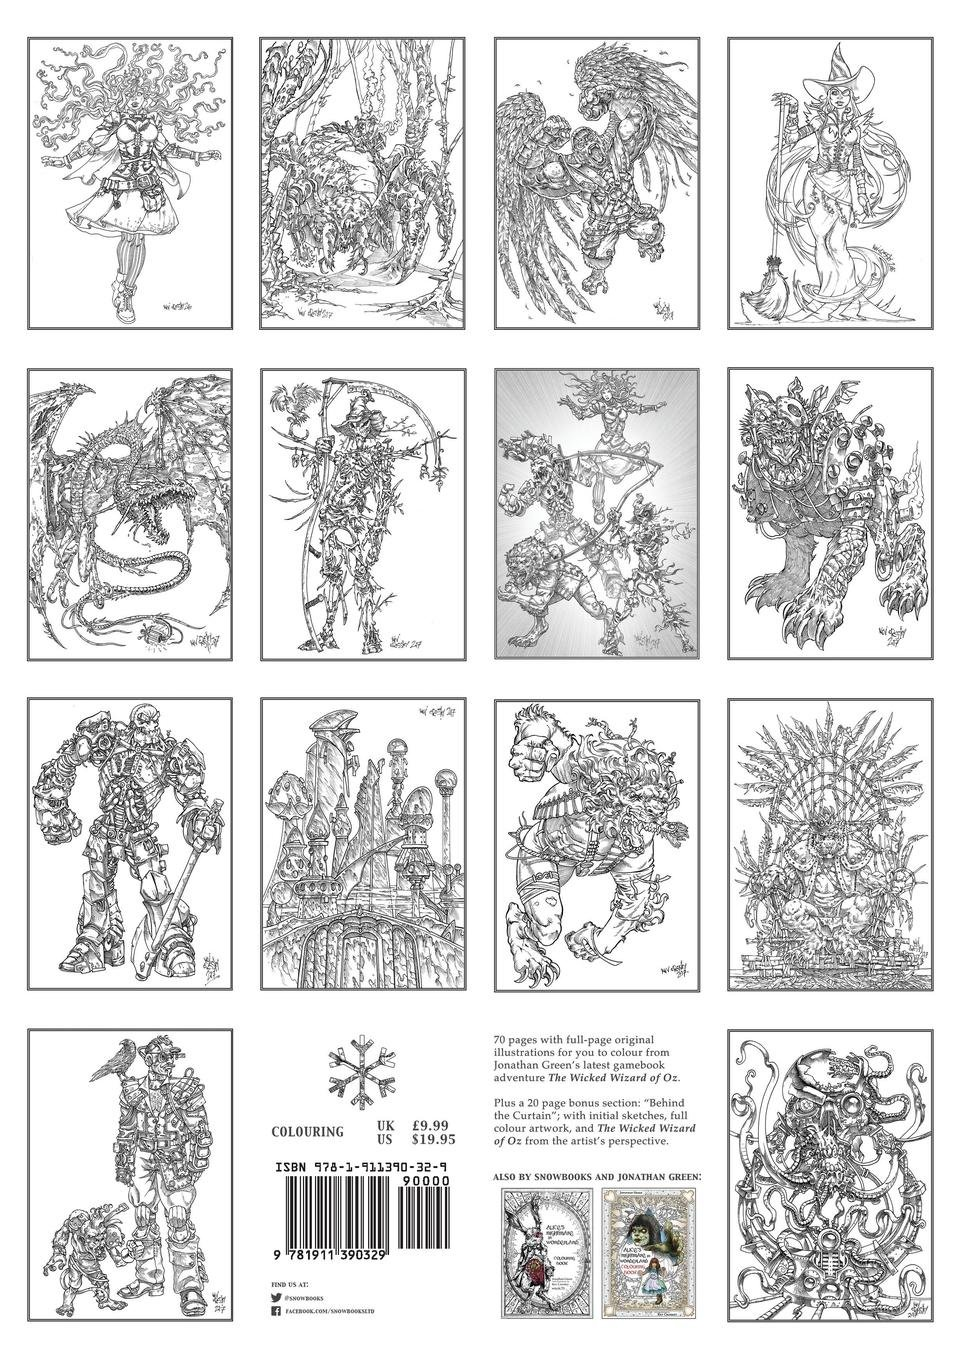 The wicked wizard of oz colouring book jonathan green kev crossley 9781911390329 amazon com books